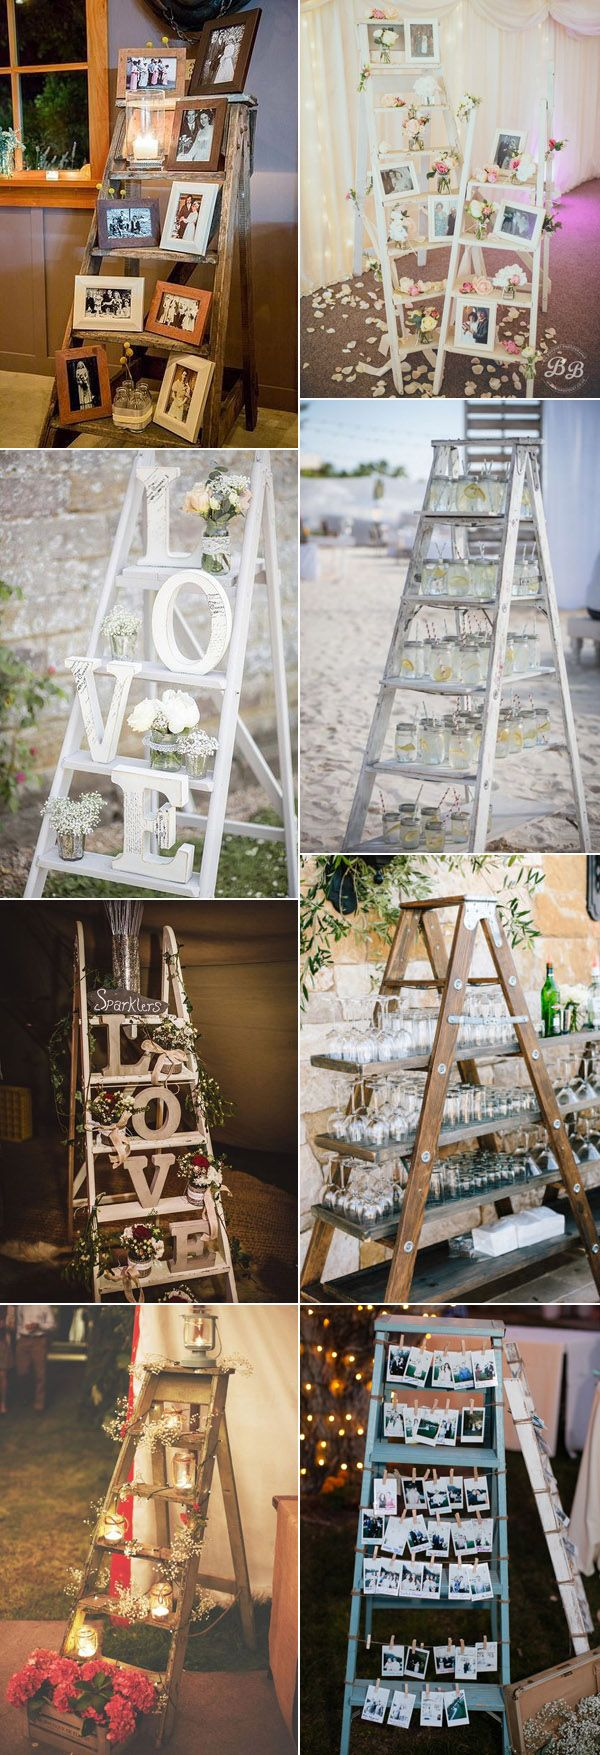 25 perfect wedding decoration ideas with vintage ladders wooden chic rustic wedding decoration ideas with wooden ladders diy rustic vintage country wedding decorations make photo stands using a wood ladder junglespirit Images